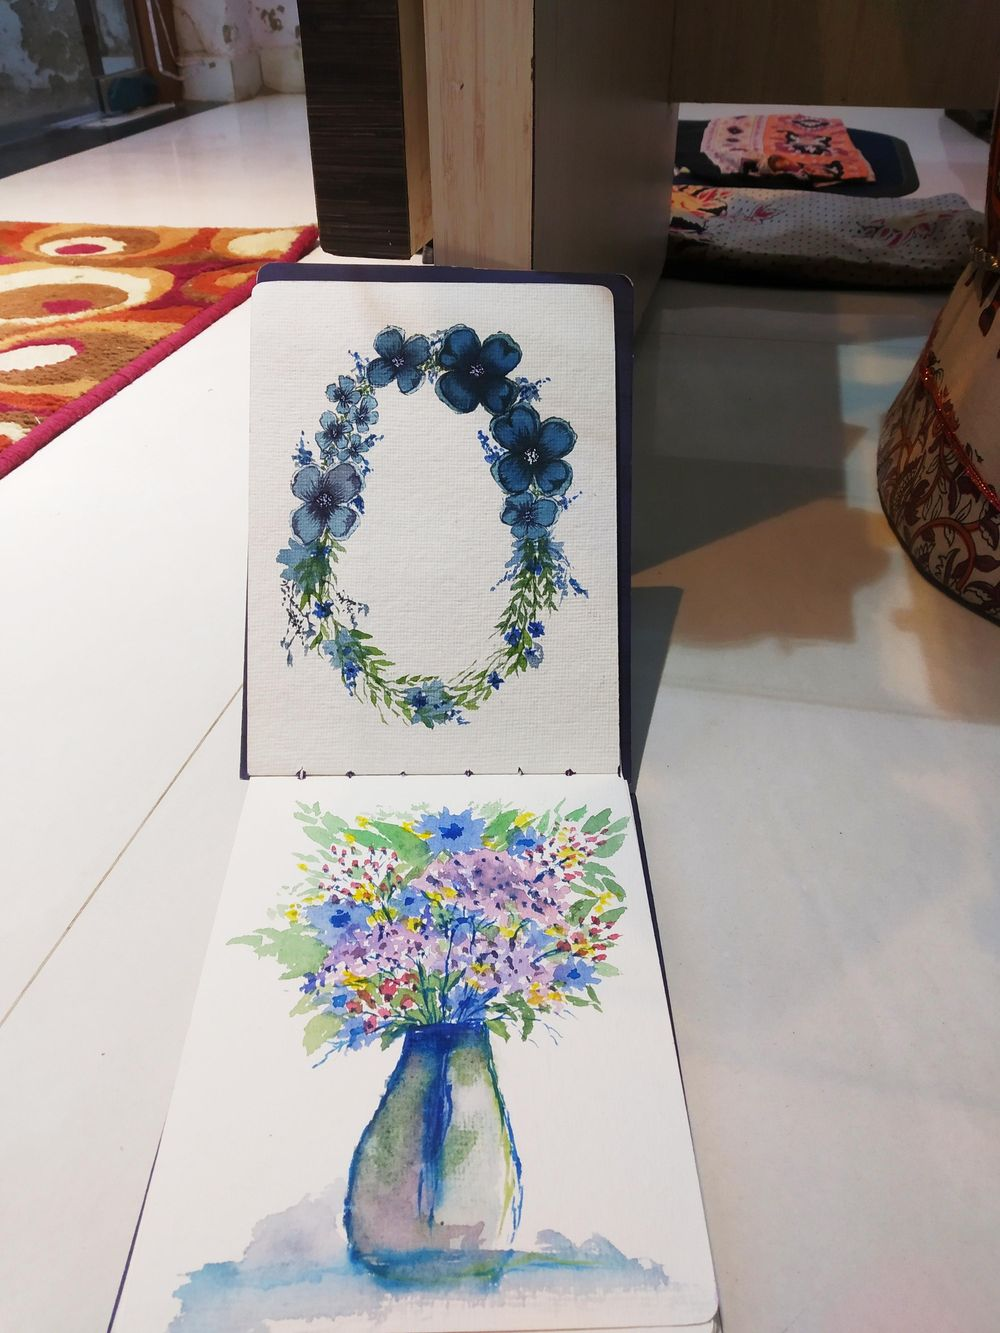 watercolor floral master class-loose florals, fillers and leaves - image 3 - student project